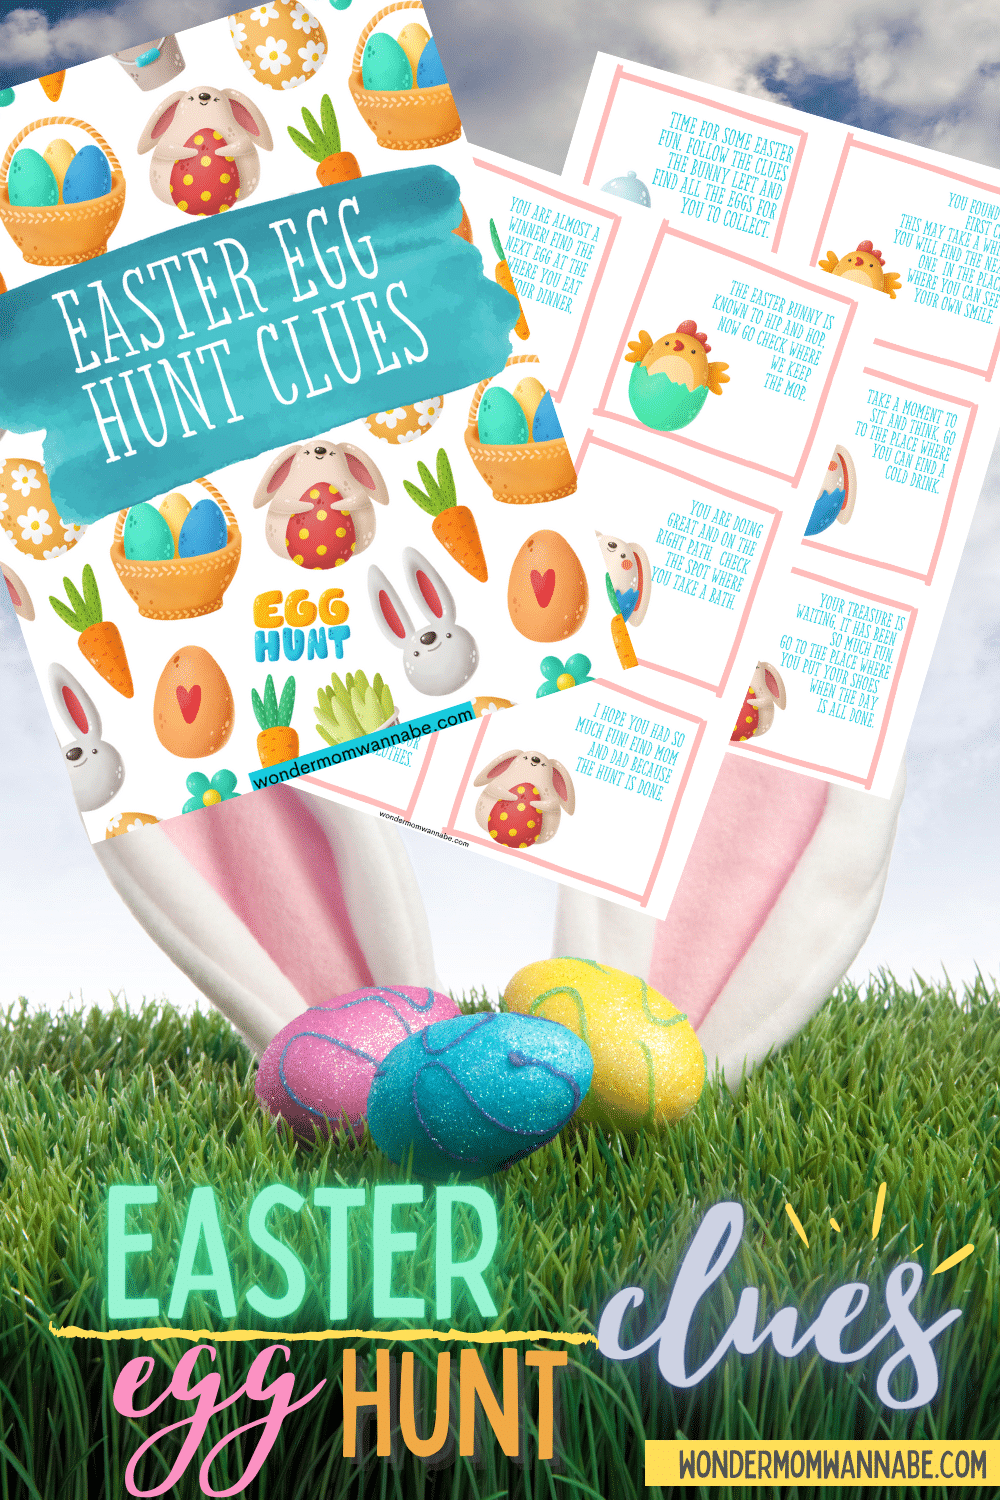 These free printable Indoor Easter Egg Hunt Clues make it easy to set up a fun scavenger hunt for eggs on Easter morning. #easter #easteregghunt #scavengerhunt #indooreasteregghunt via @wondermomwannab